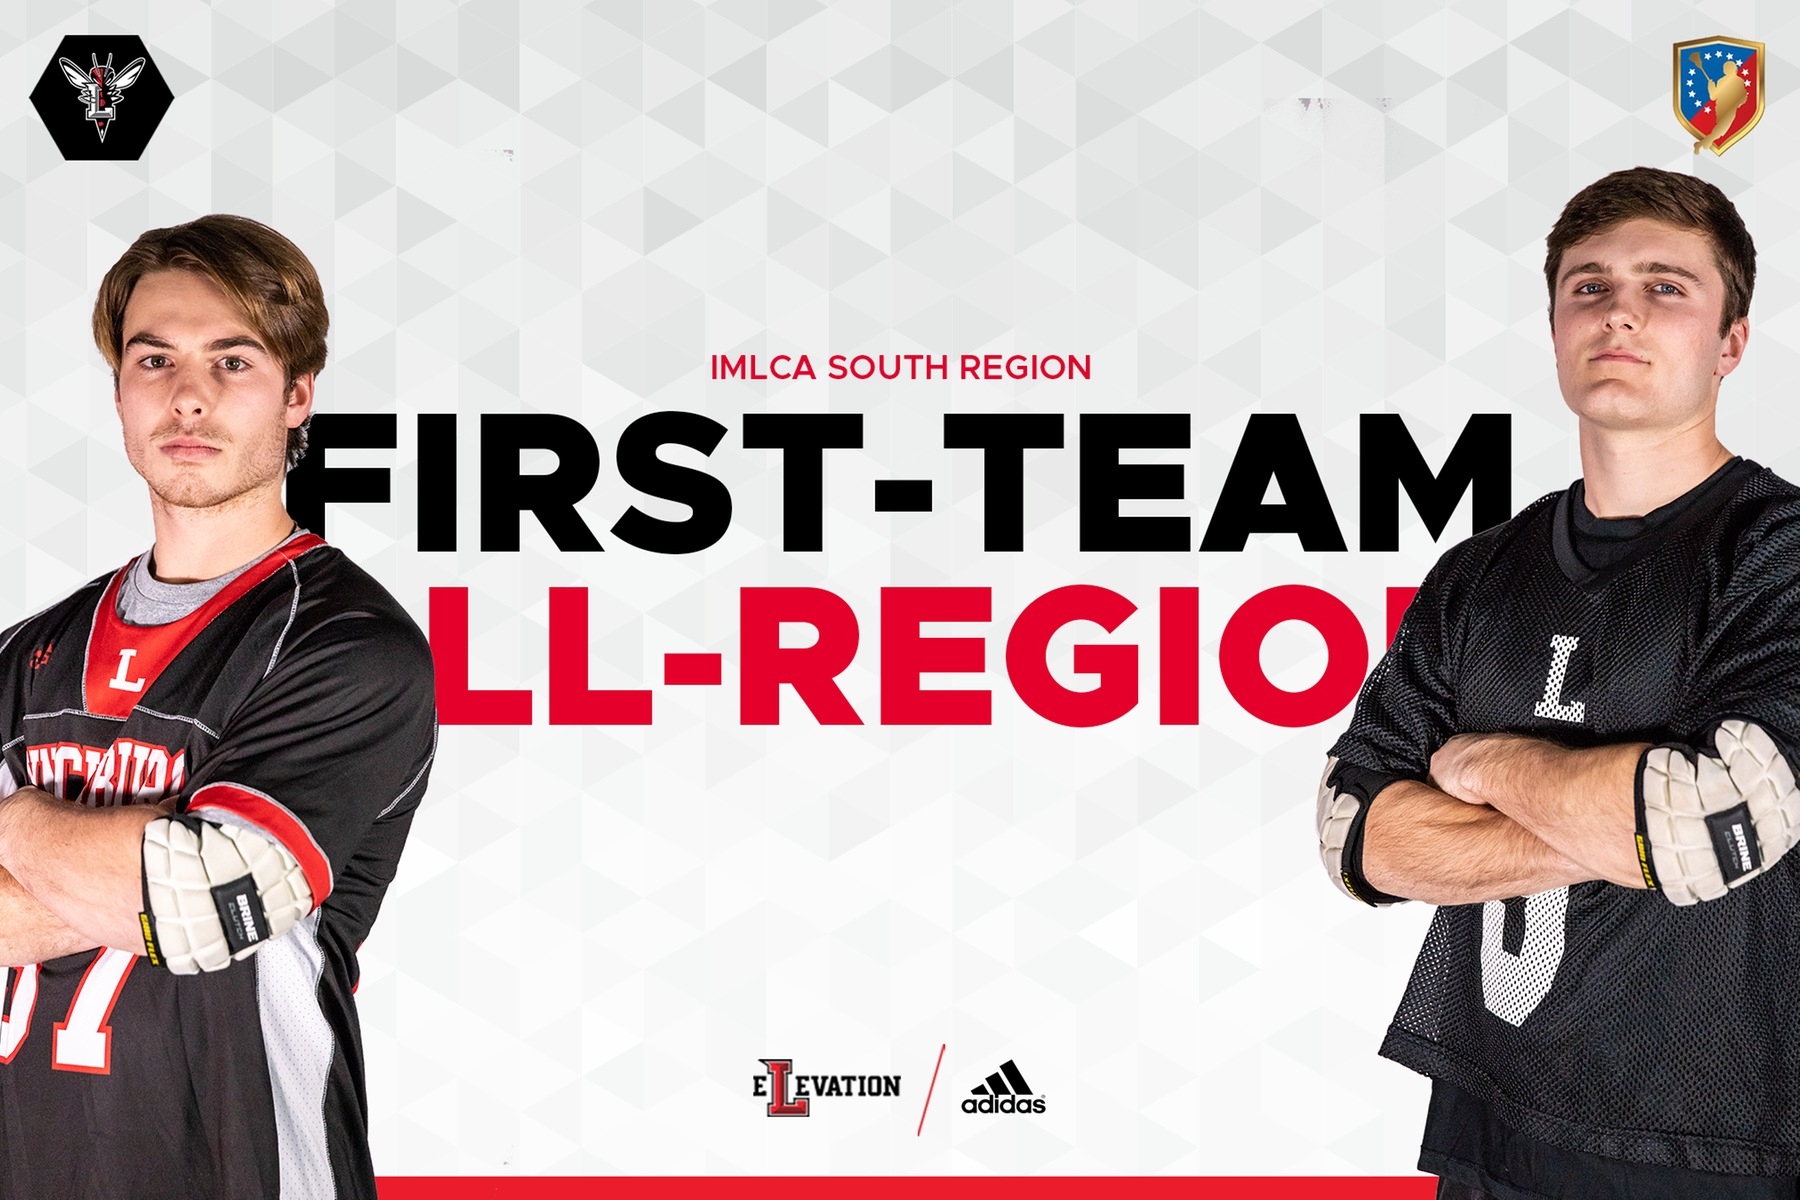 Photos of Meadows and McDonald on white background in uniform. Text in middle: IMLCA first-team all-region